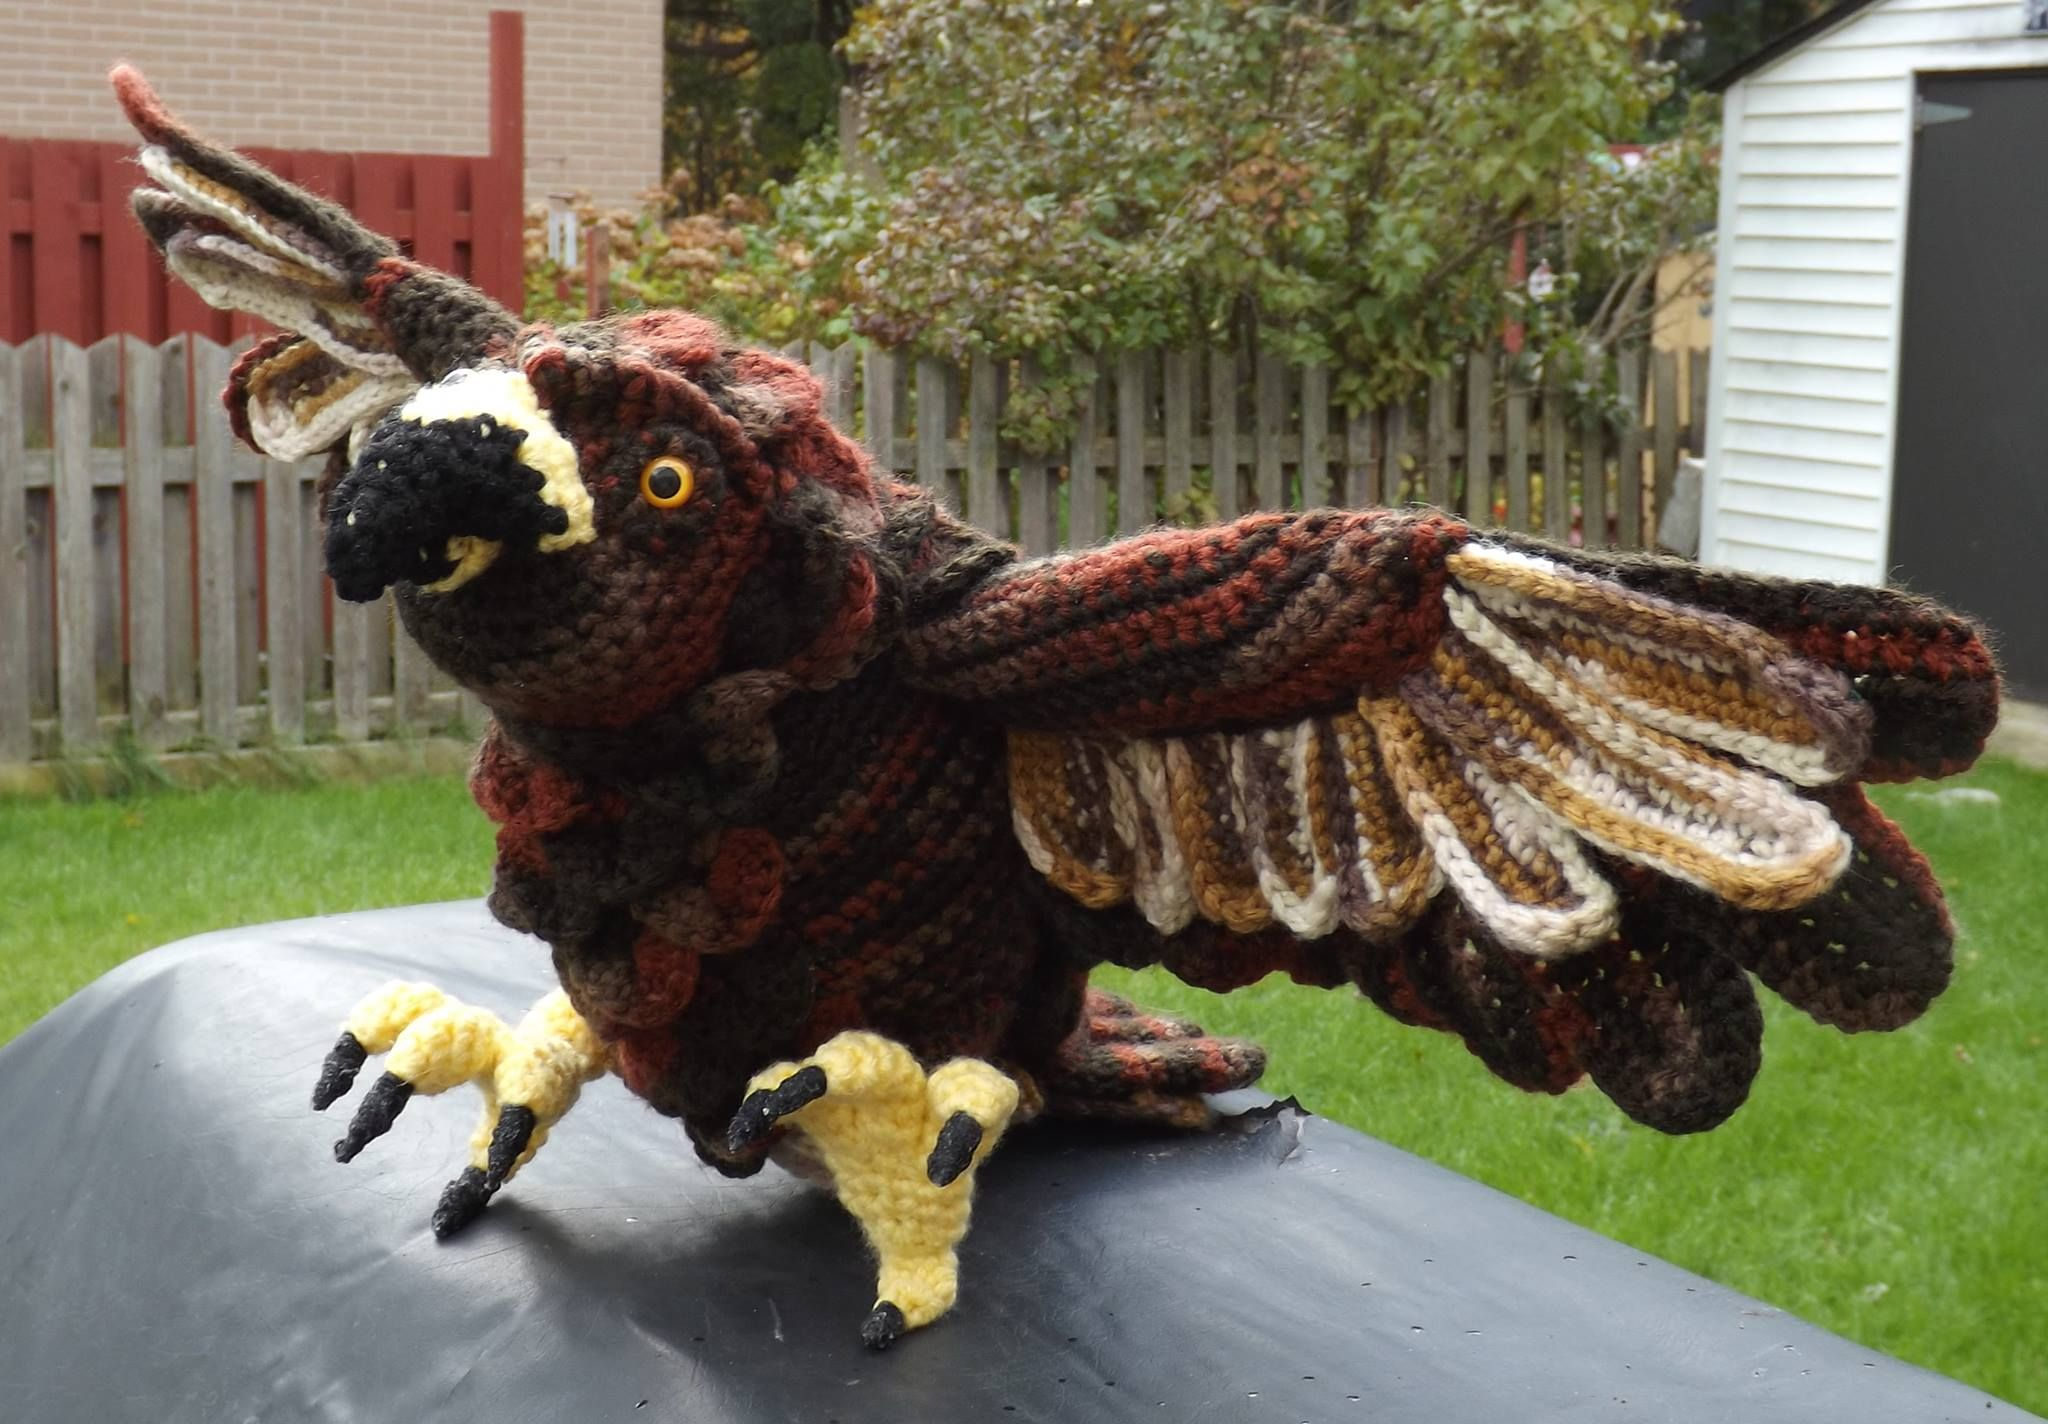 Eagle in crochet https://www.facebook.com/pages/The-Crochet-Crowd/116482731742088